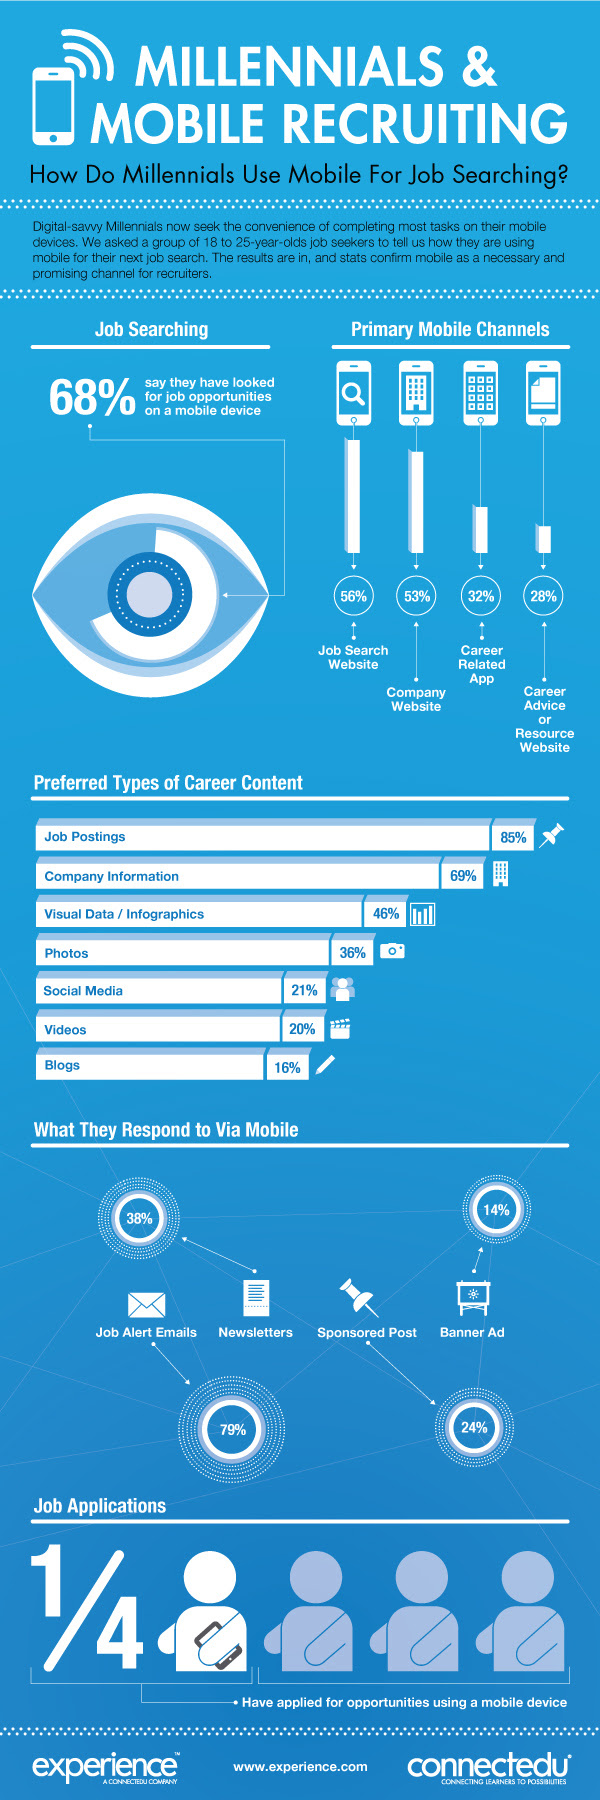 Smartphone Job Search: Millennials Going Mobile to Find Their Next Gig [Infographic]